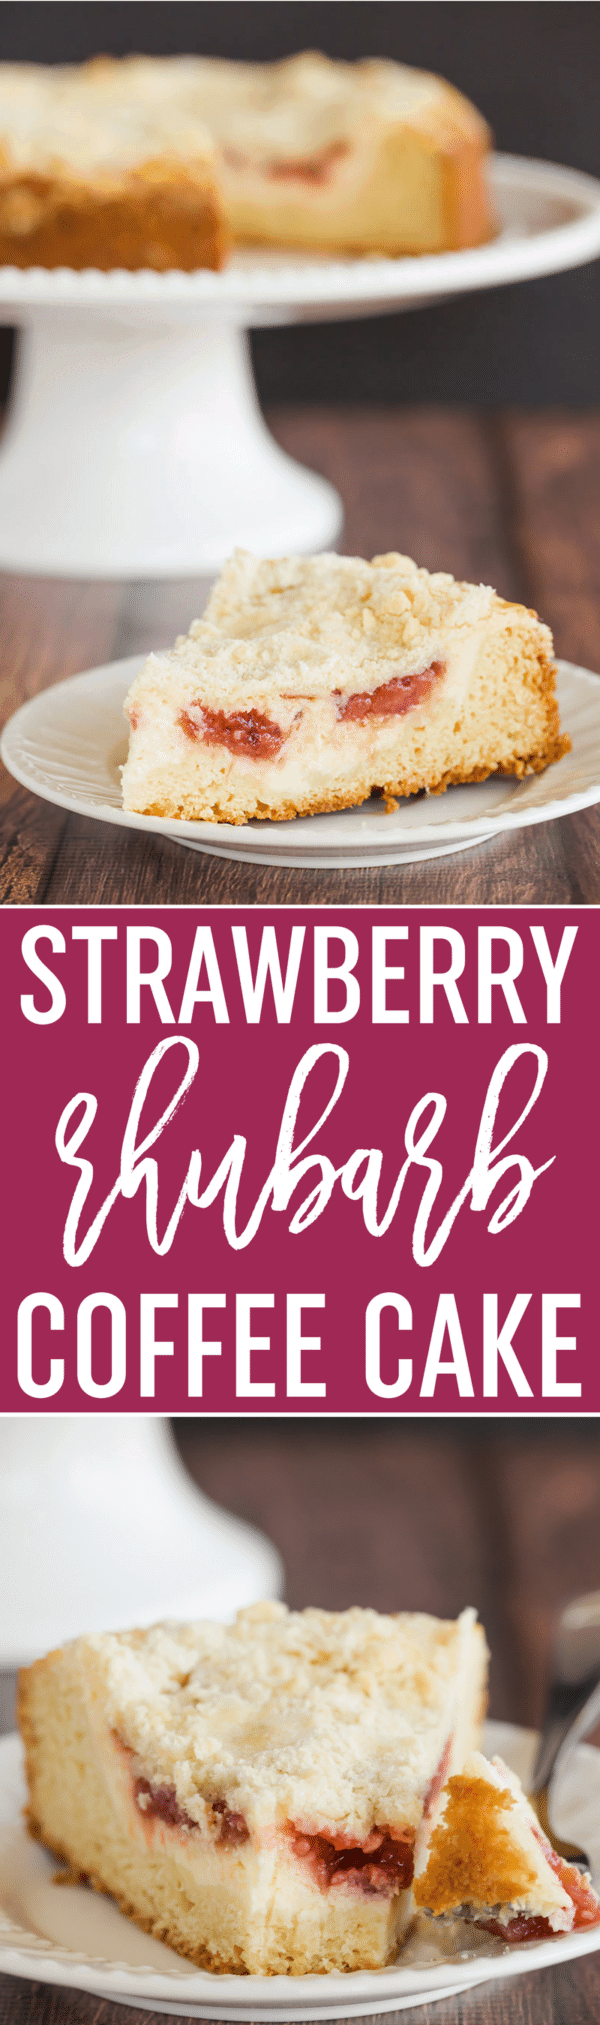 Strawberry Rhubarb Coffee Cake - A biscuit-like cake topped with a cream cheese filling and homemade strawberry rhubarb jam.